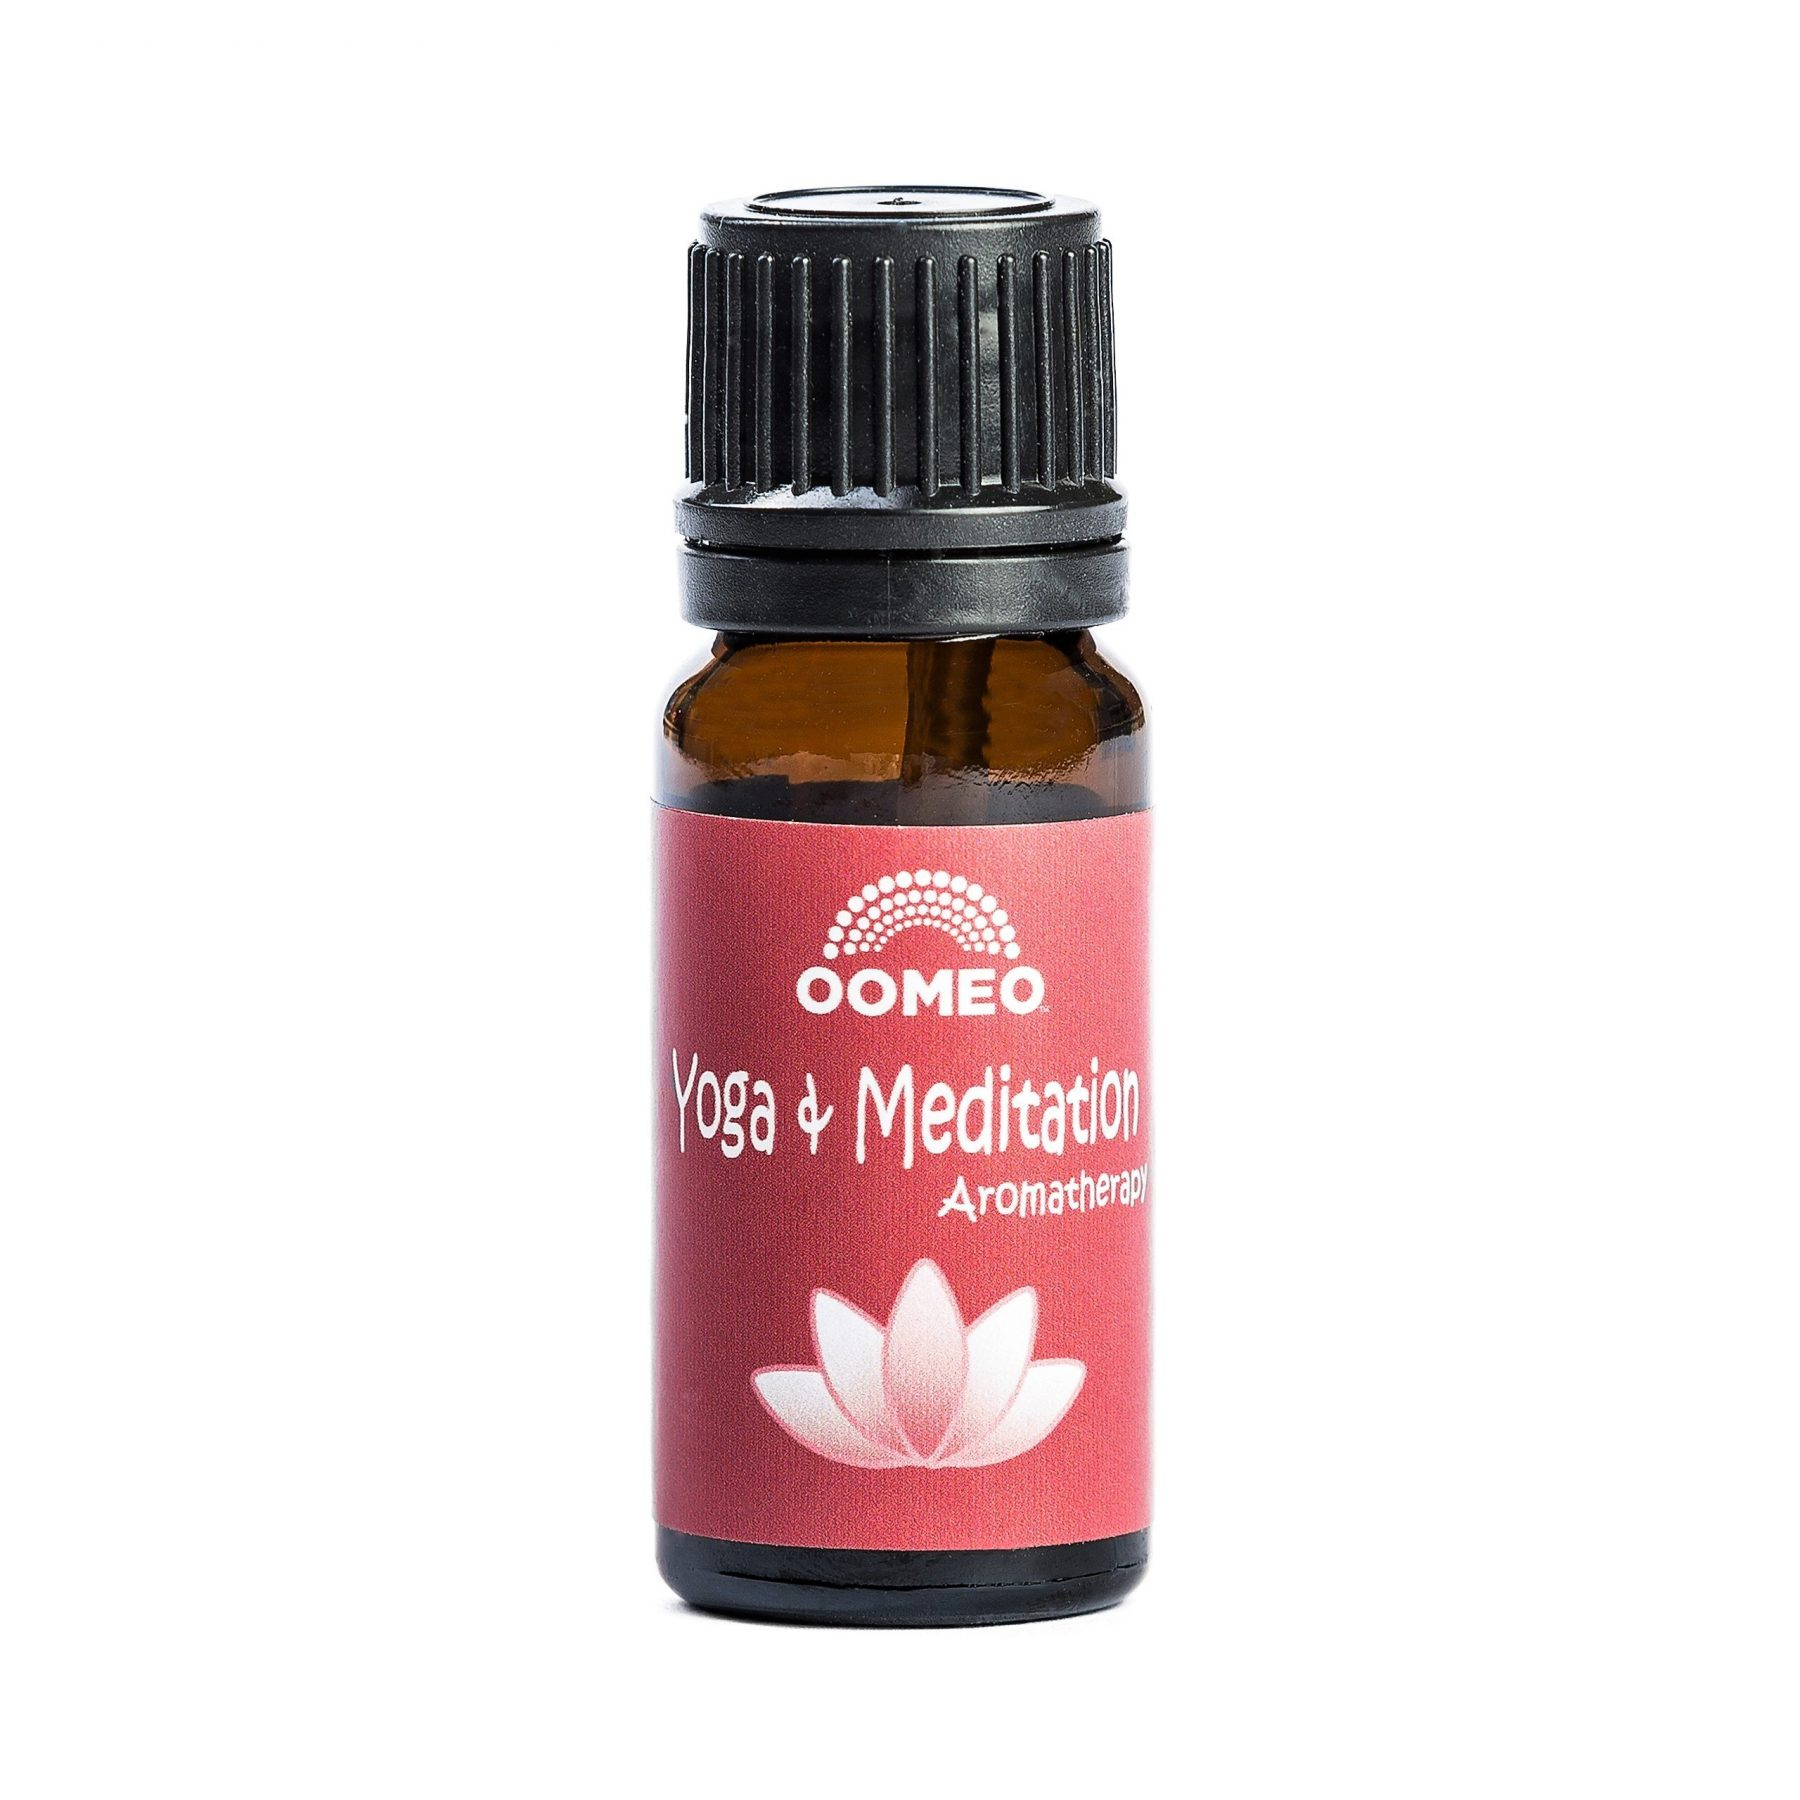 Yoga meditation blend of essential oils